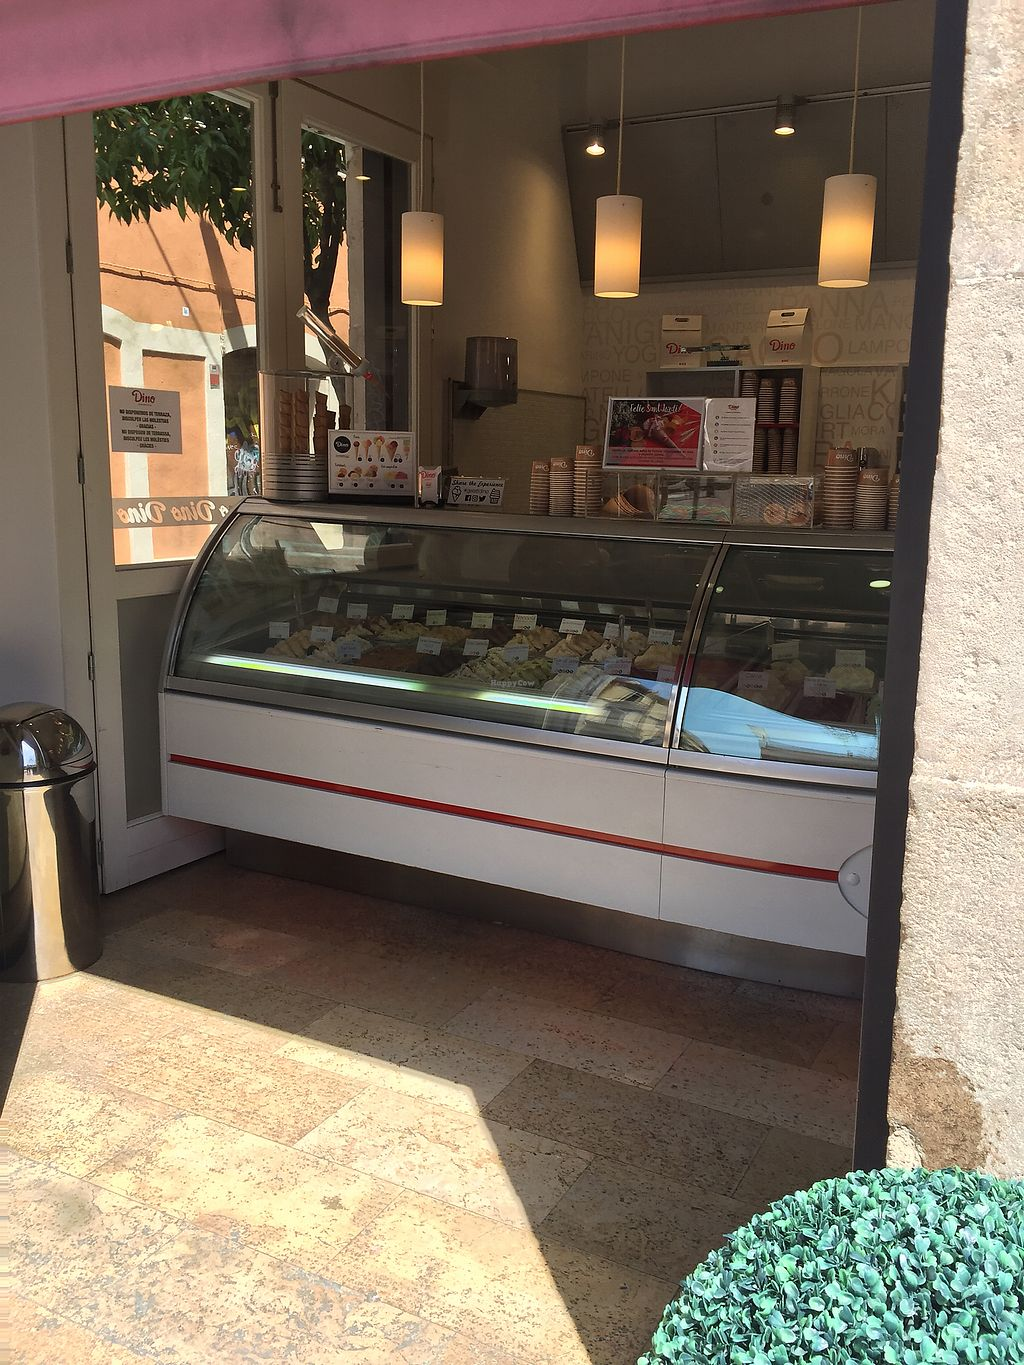 "Photo of Gelateria Italiana  by <a href=""/members/profile/Jameskille"">Jameskille</a> <br/>Range  <br/> April 20, 2018  - <a href='/contact/abuse/image/99001/388537'>Report</a>"